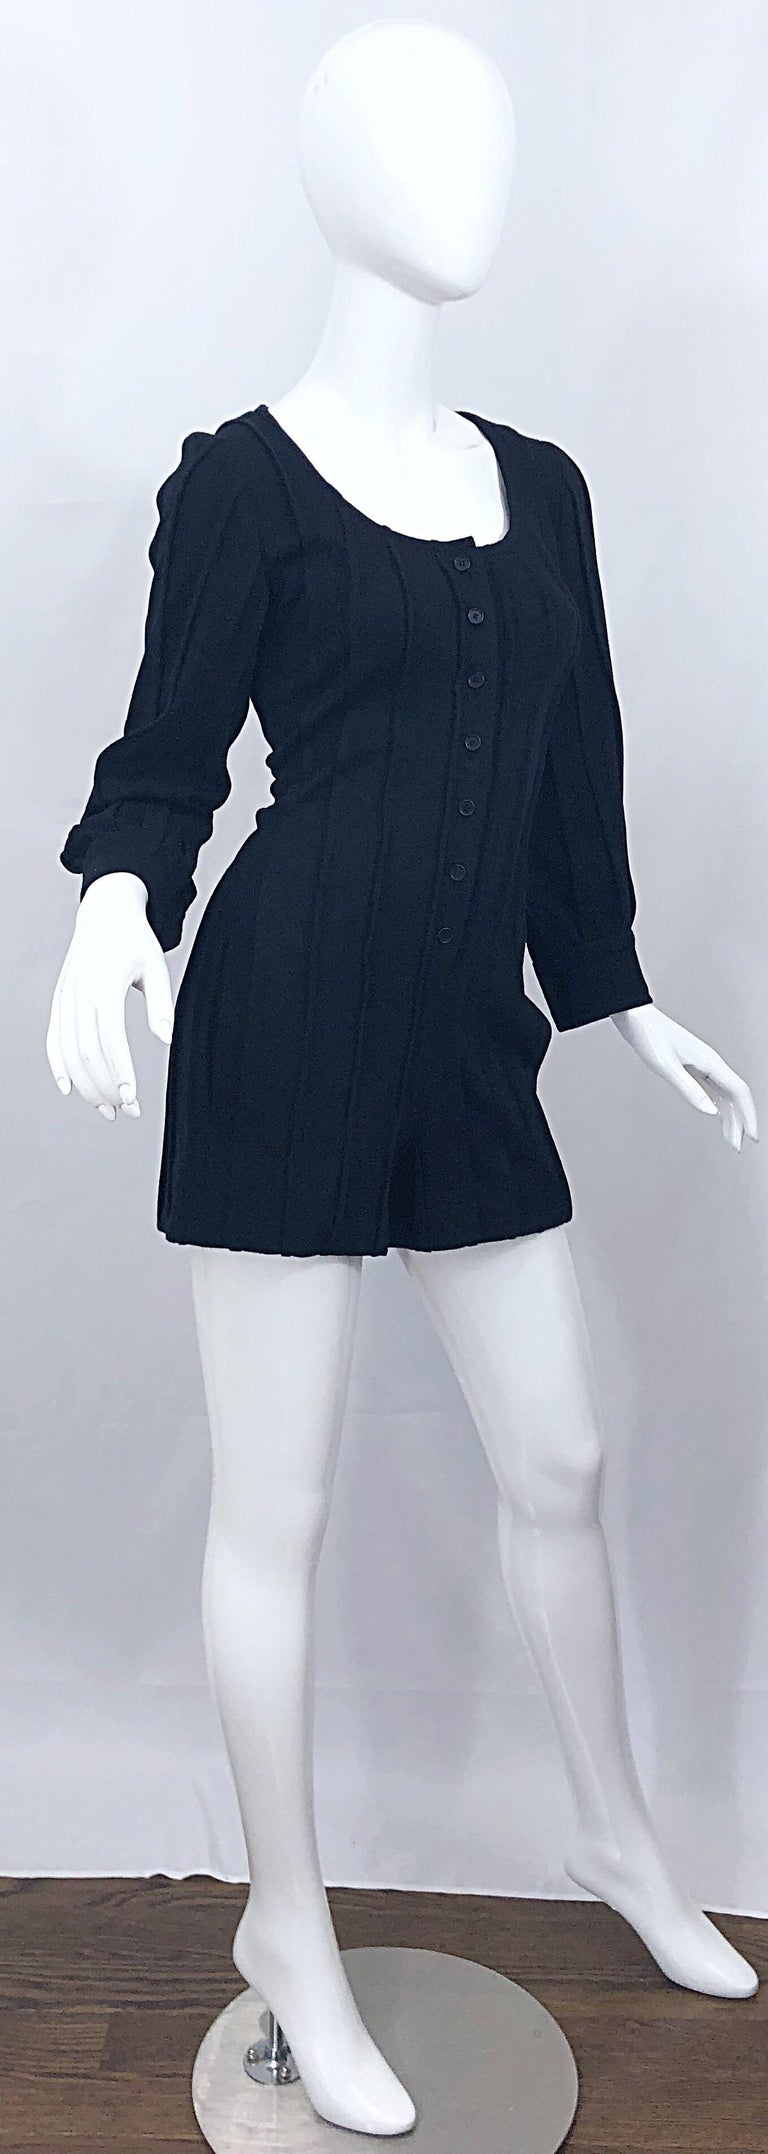 Vintage Givenchy Haute Couture Black Wool Long Sleeve One Piece Romper Jumpsuit For Sale 7